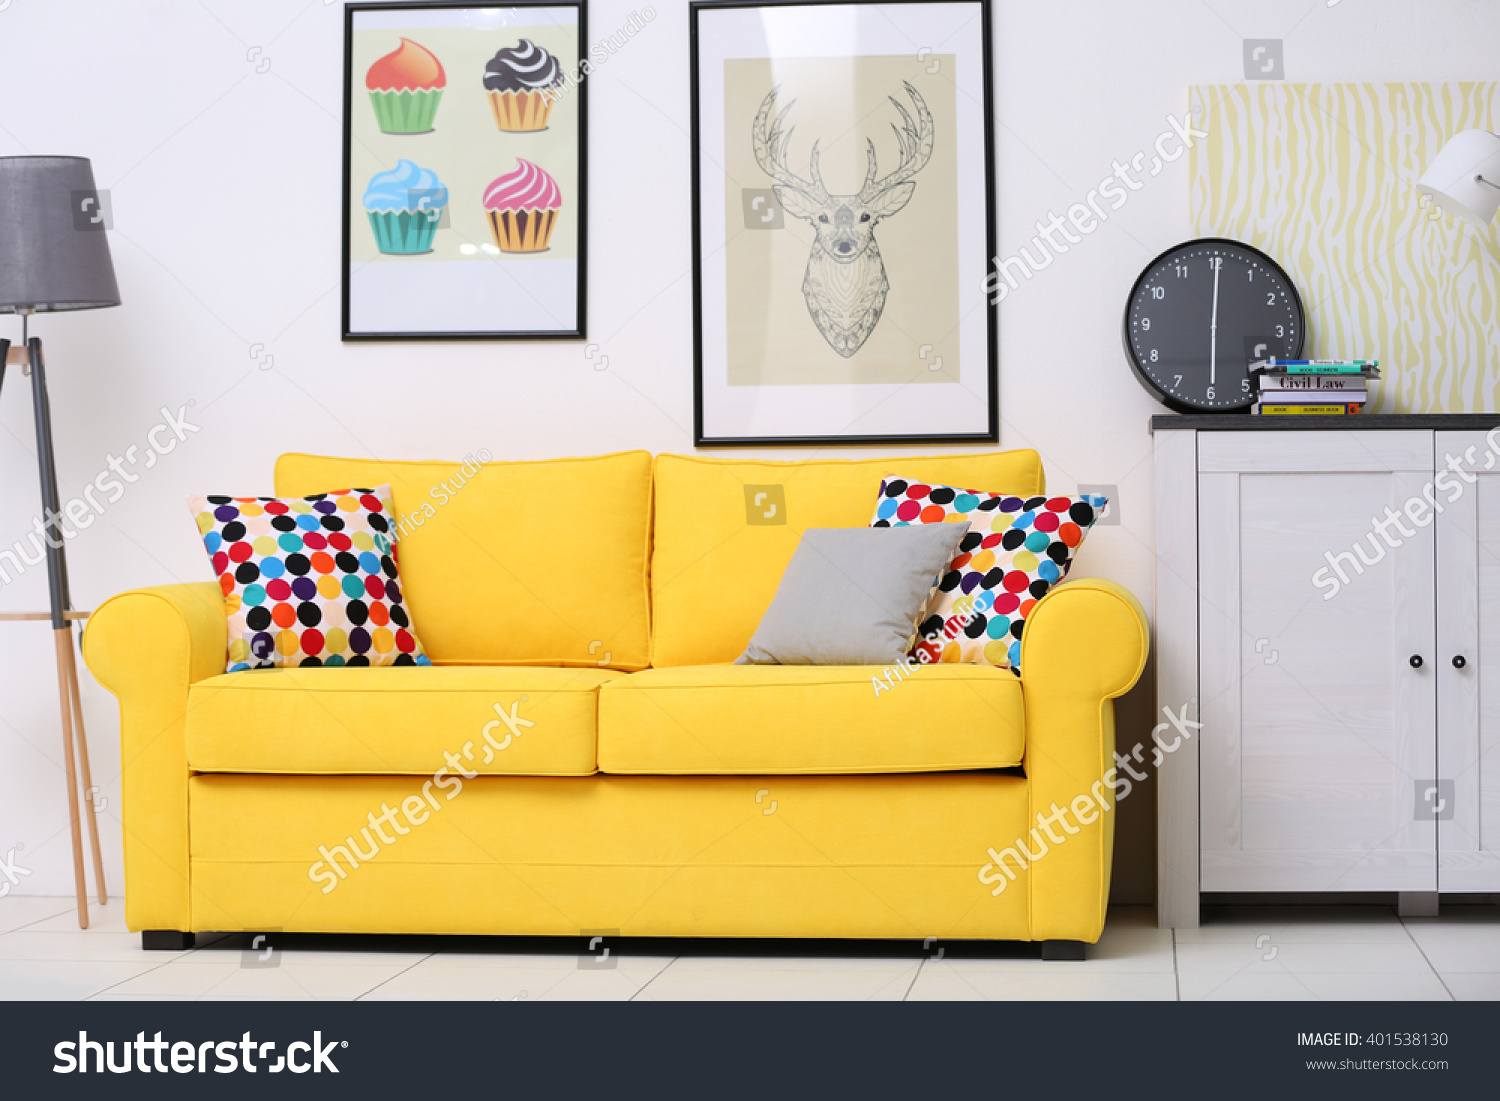 Small Space Couch. Small Living Room On Pinterest Small ...